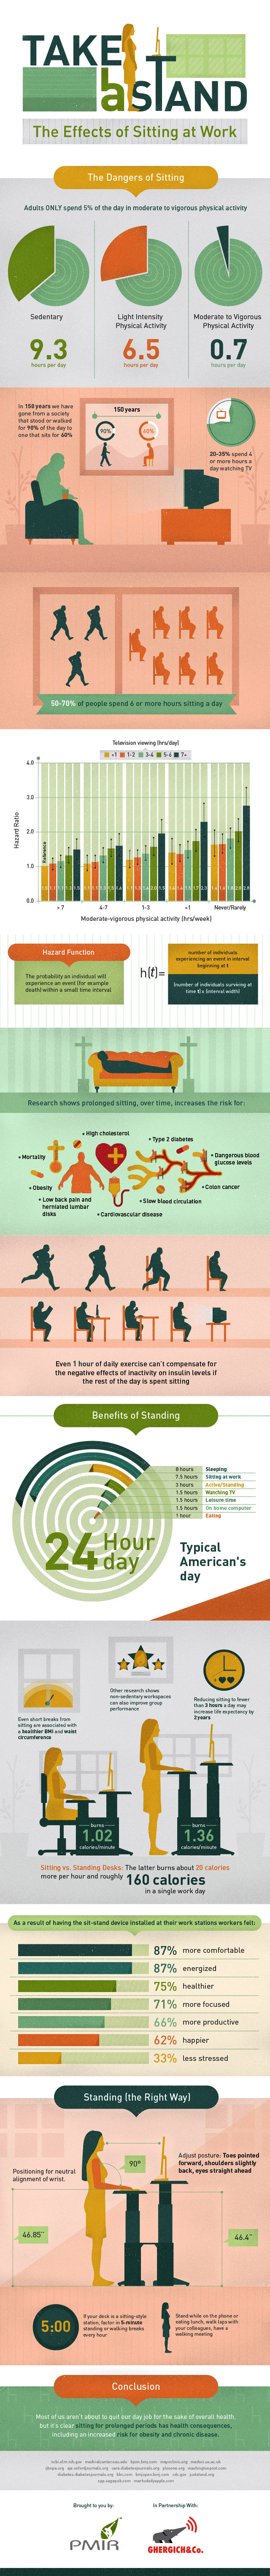 Benefits of Standing at Your Desk all Day by PainInjuryRelief - Adjustable Surfaces